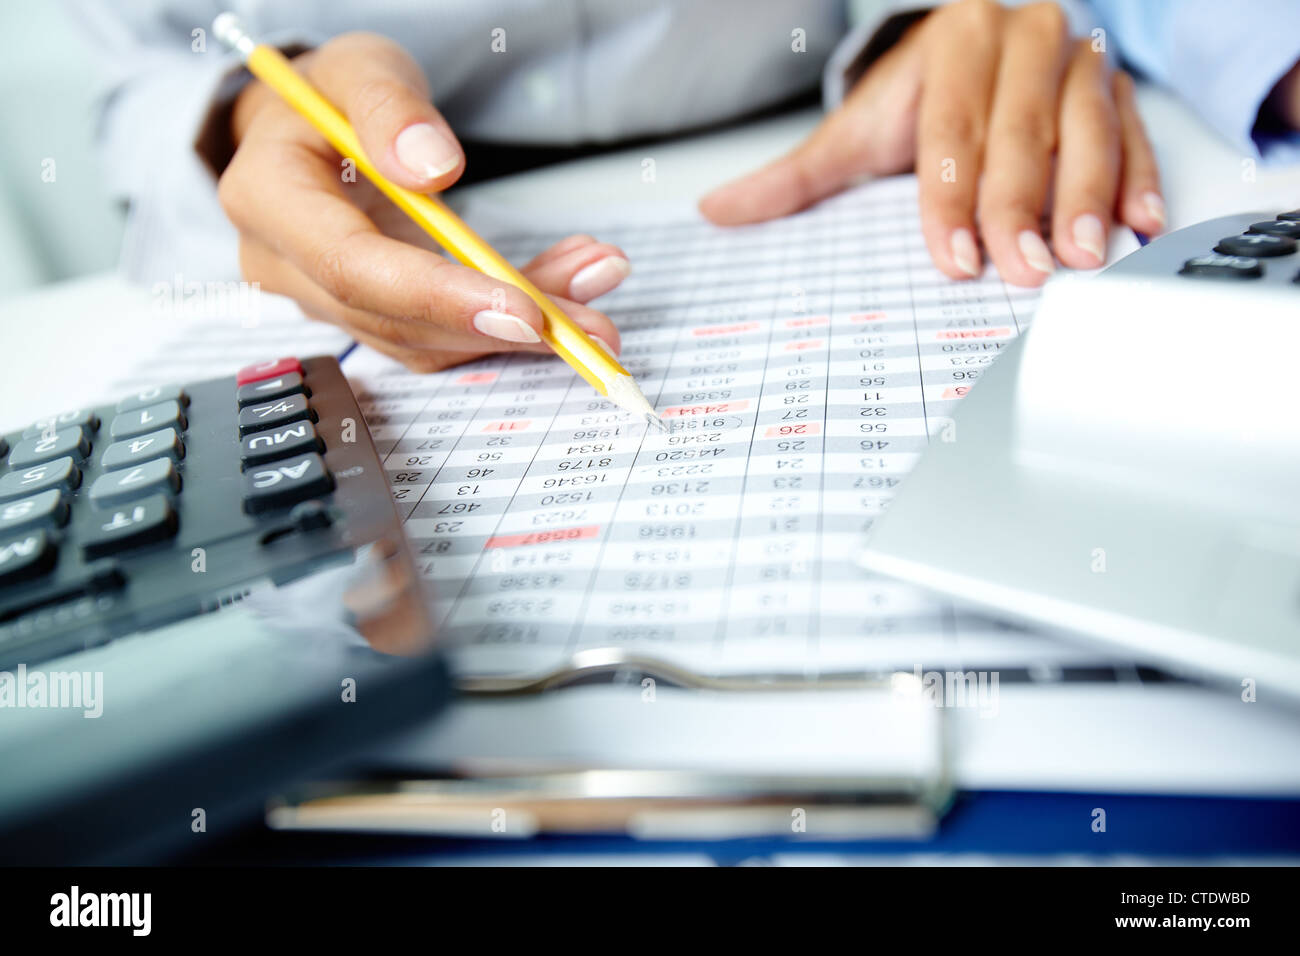 Photo of human hands holding pencil and marking numbers in documents - Stock Image